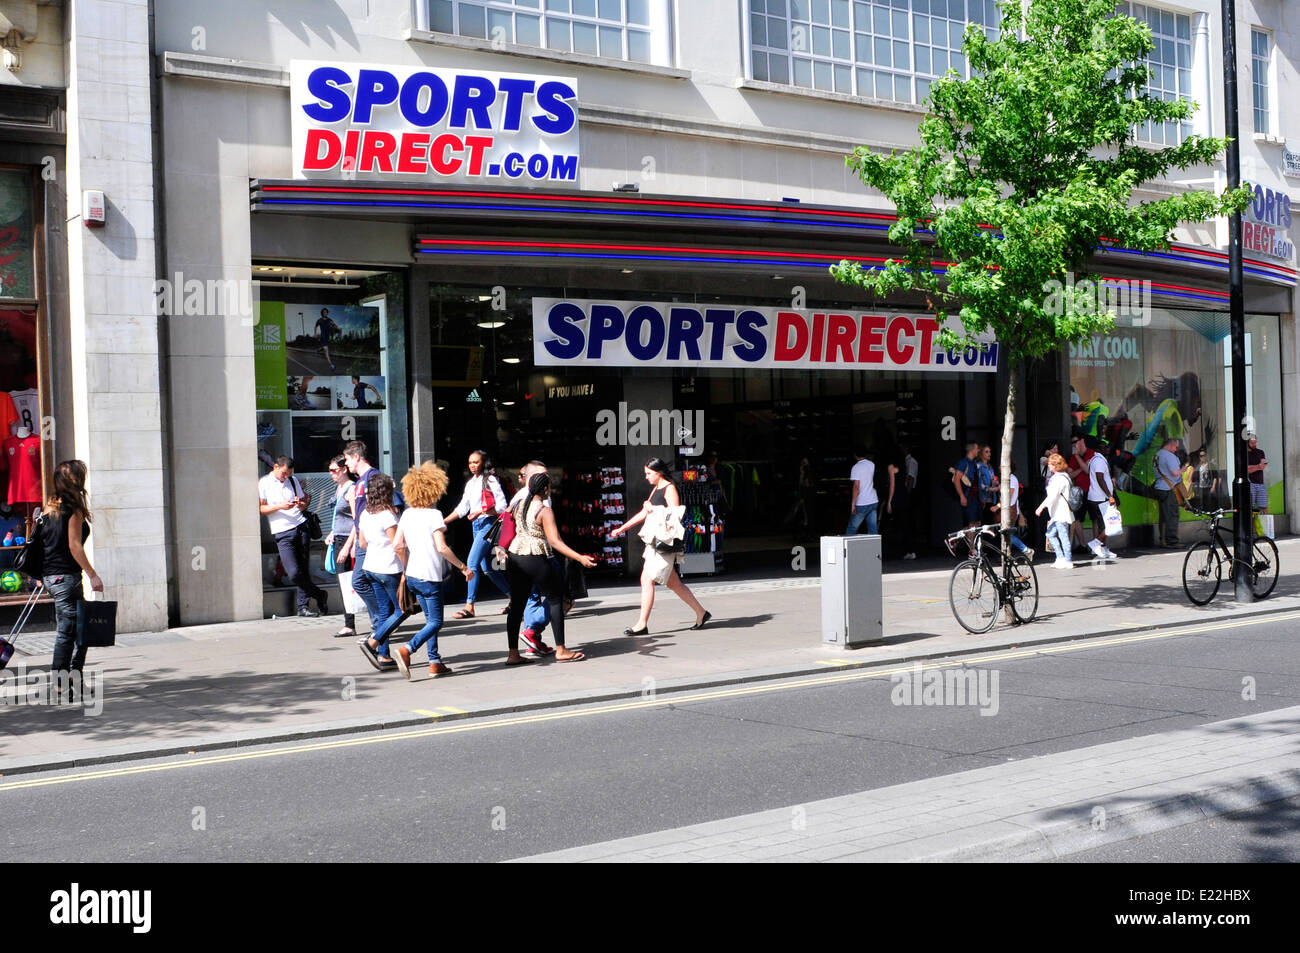 the new sports direct shop on oxford street london uk stock photo royalty free image. Black Bedroom Furniture Sets. Home Design Ideas